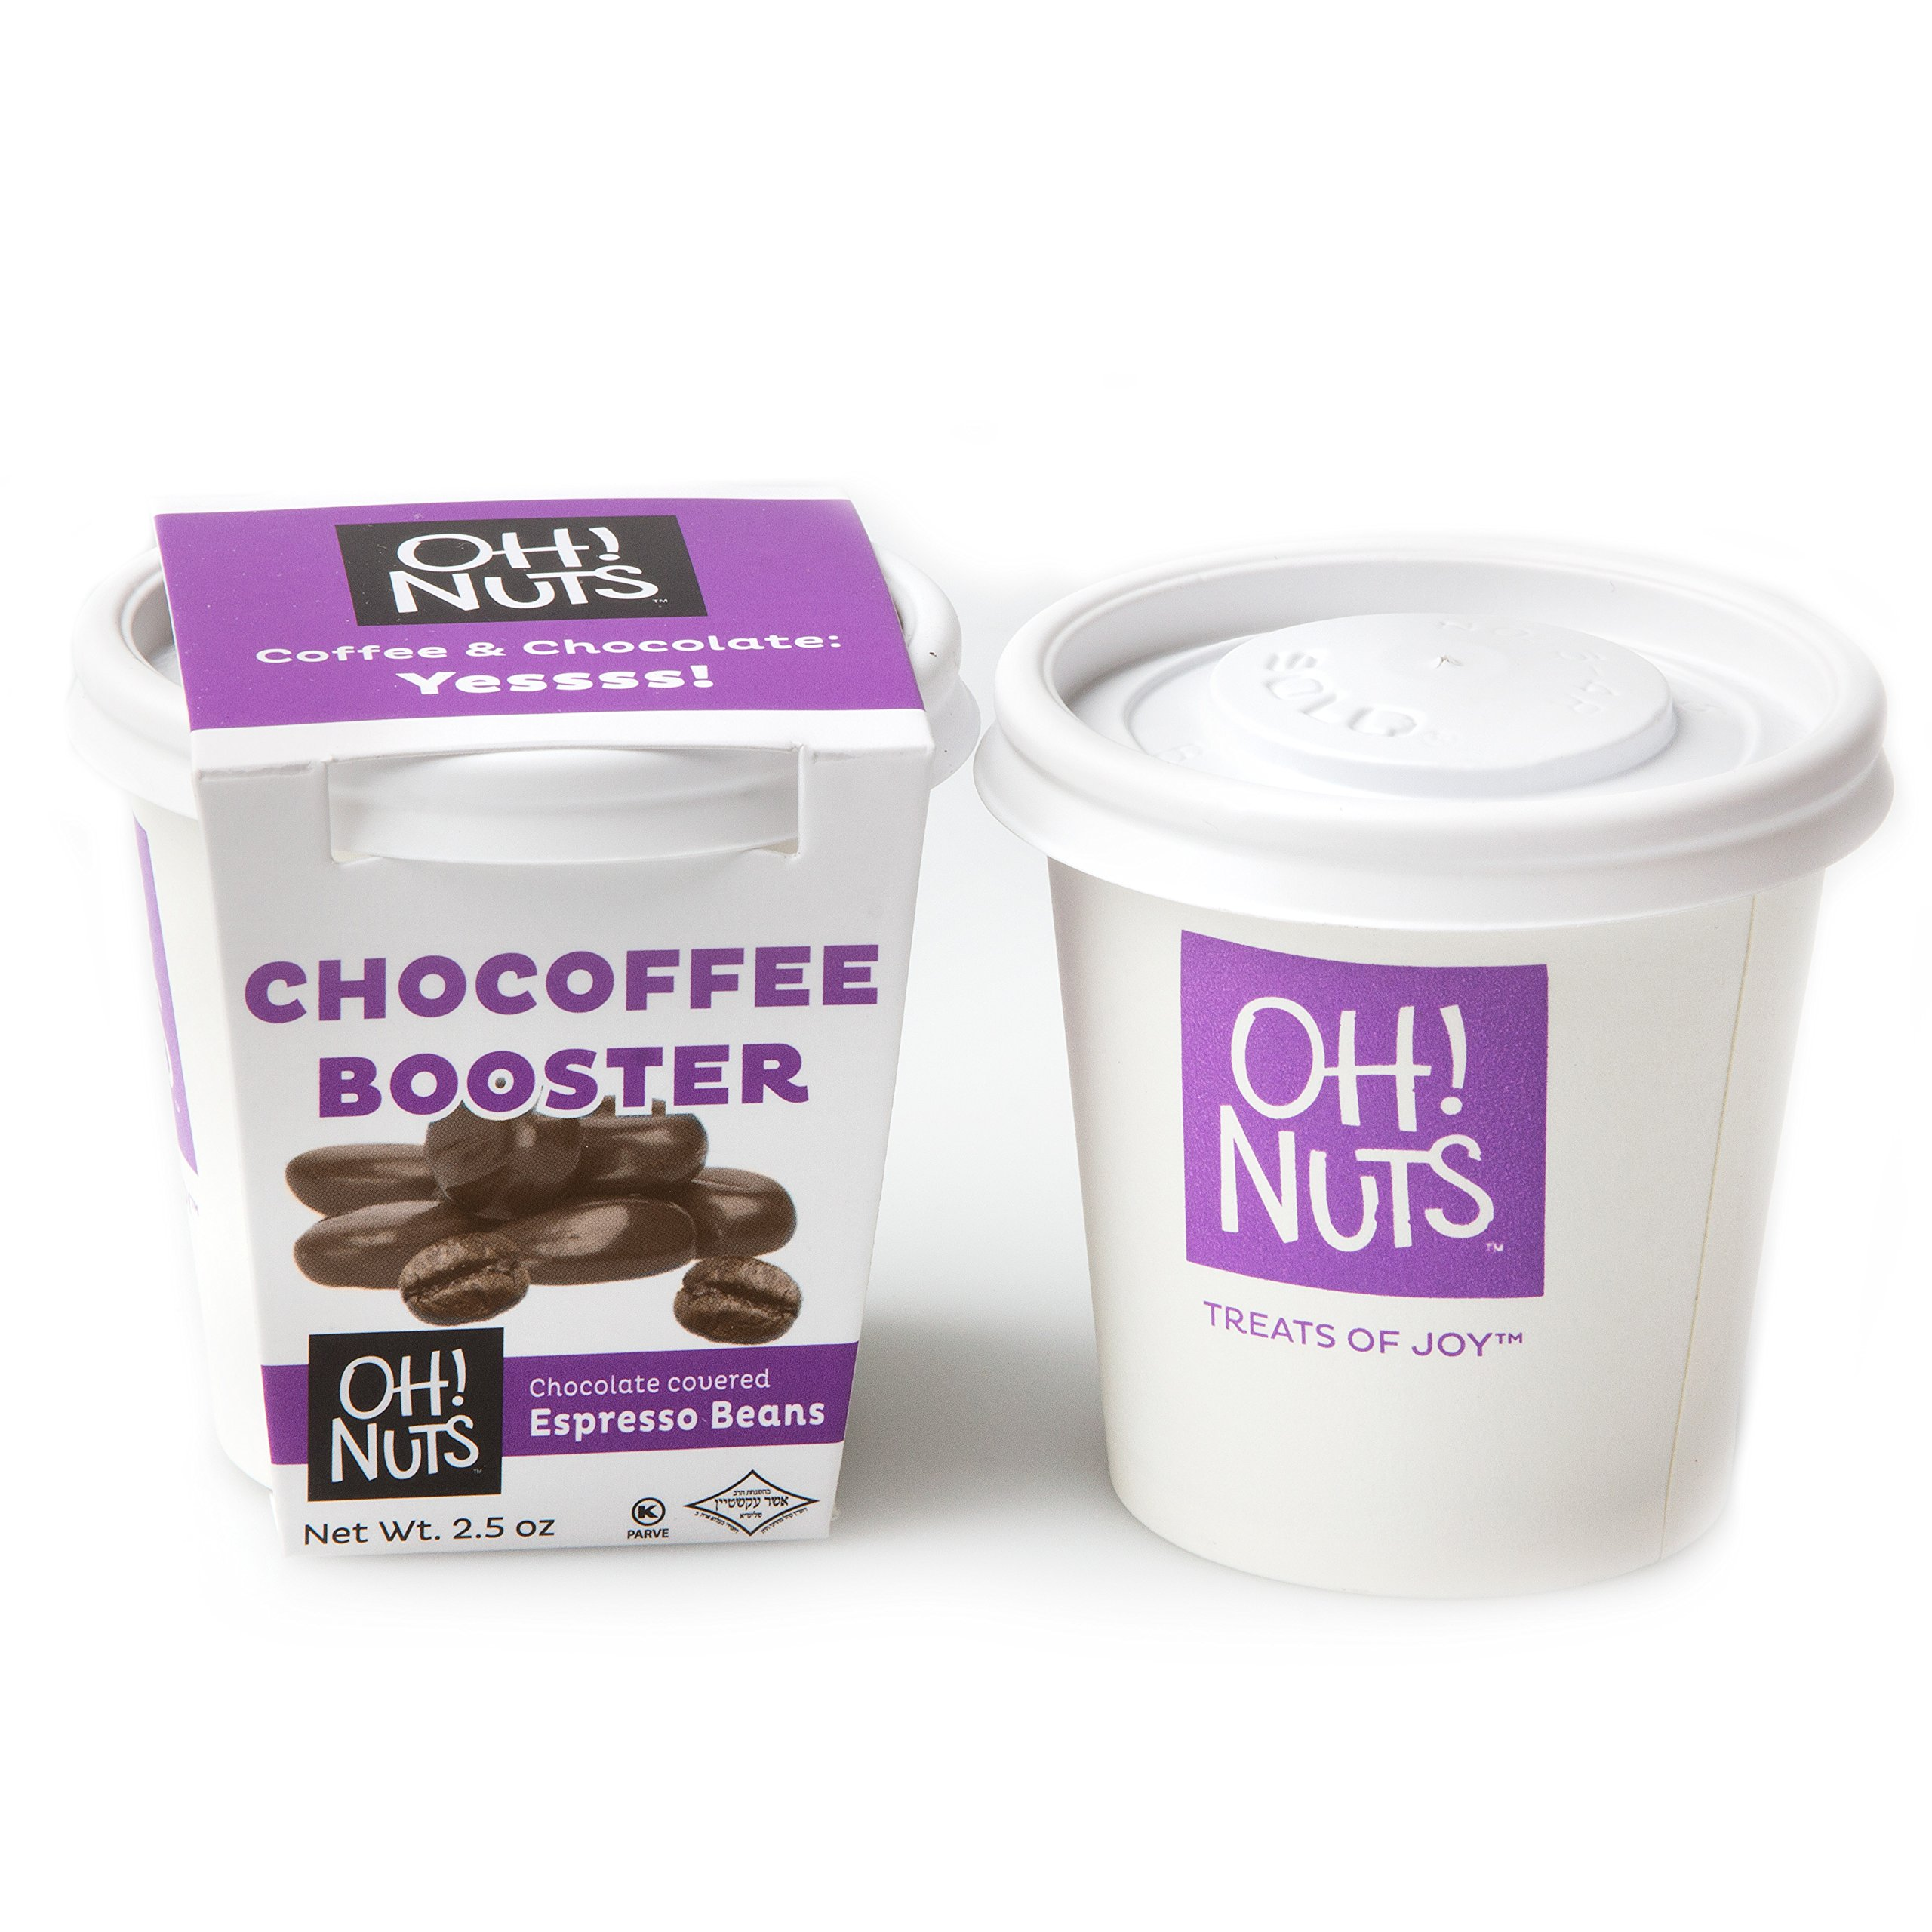 Chocolate Covered Espresso Beans, Chocofee Booster Coffee Gifts, Dark Chocolate Covered Roasted Coffee Beans, Great on the GO or as Gift Pack - Oh! Nuts by Oh! Nuts